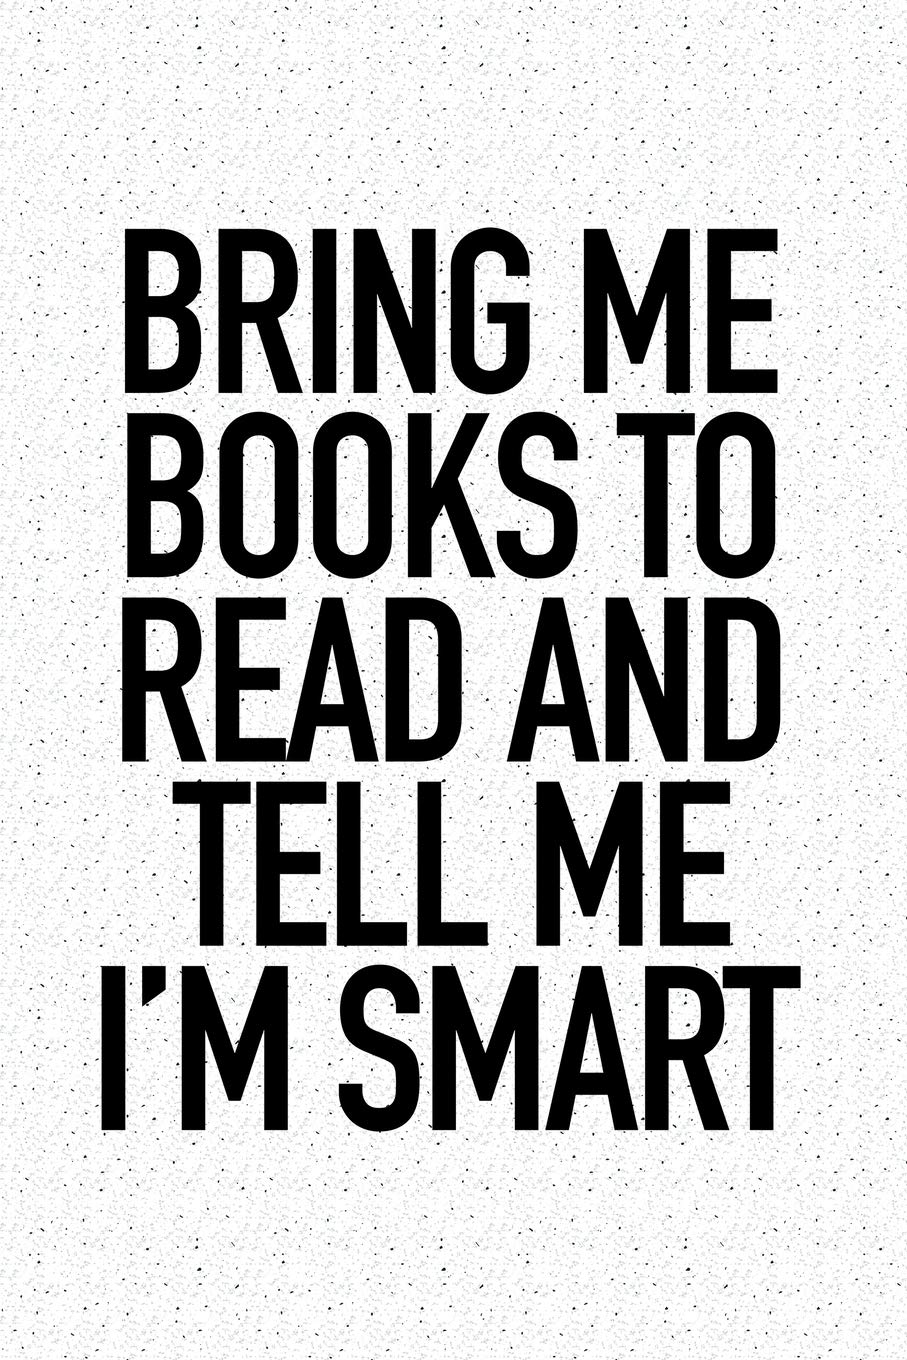 Bring Me Books To Read And Tell Me I'm Smart: A 6×9 Inch Matte Softcover Notebook Journal With 120 Blank Lined Pages And A Funny Book Loving Cover Slogan